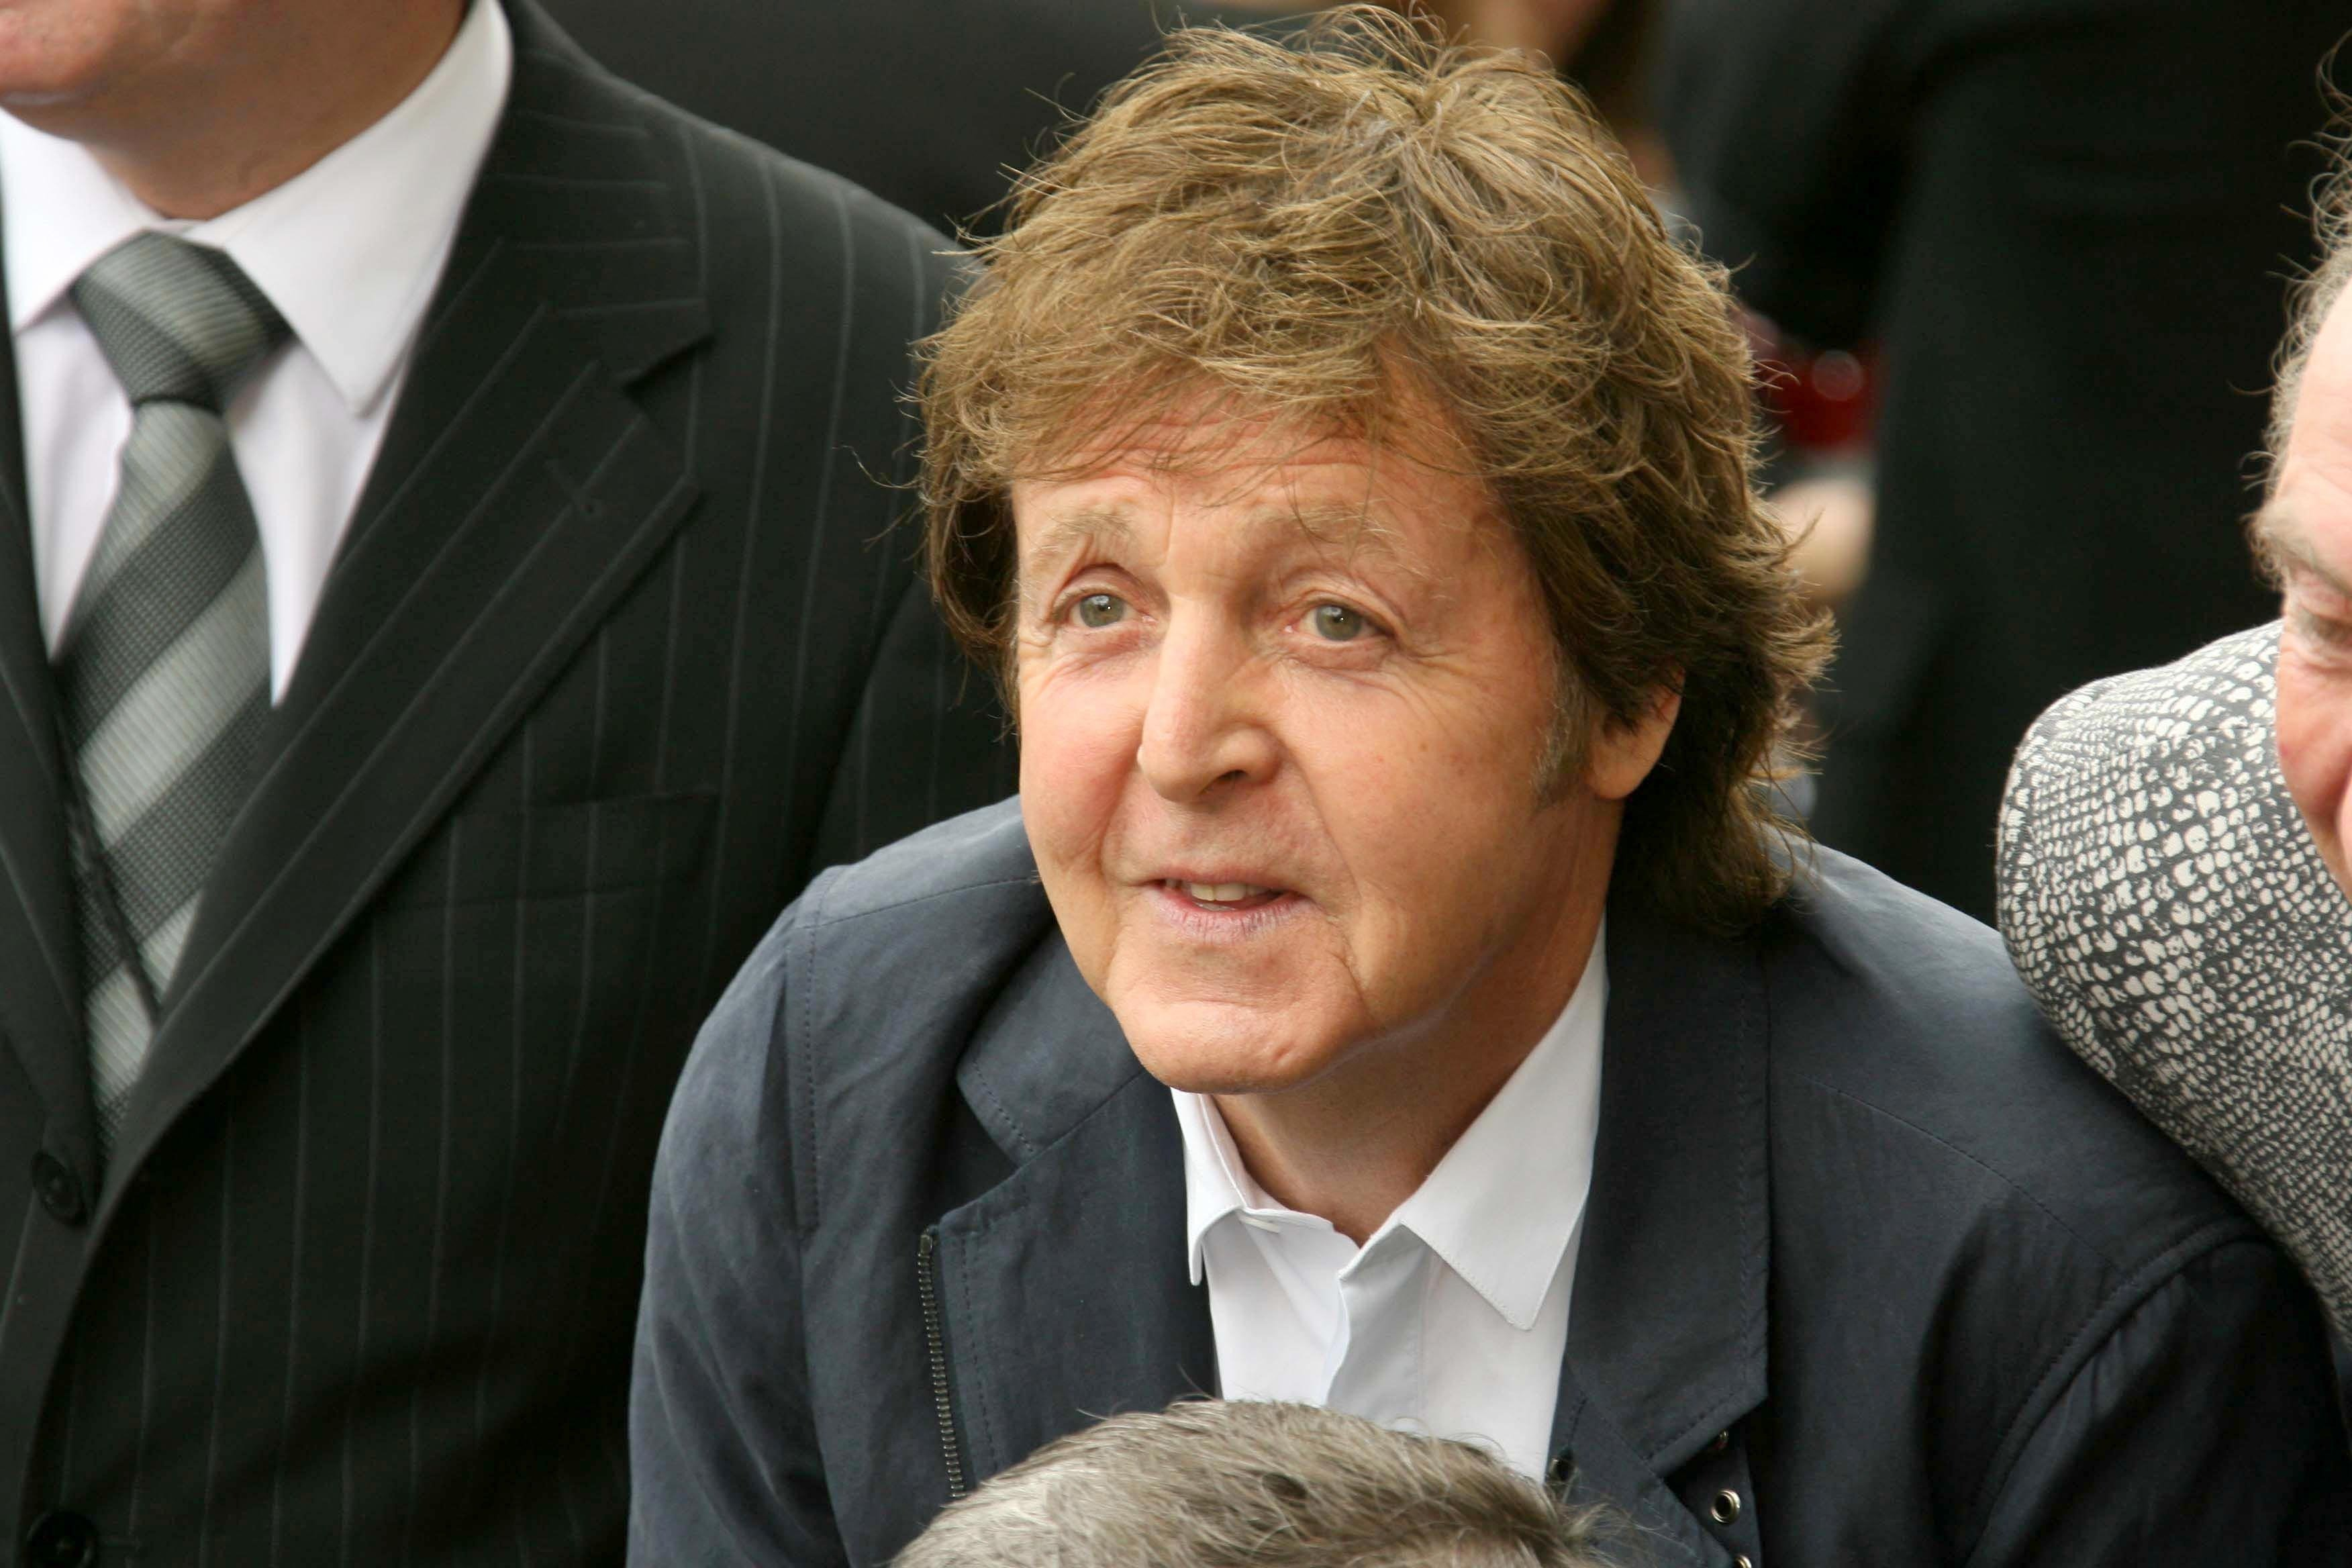 Paul McCartney during a 2009 ceremony on the Hollywood Walk of Fame.   Photo: Shutterstock